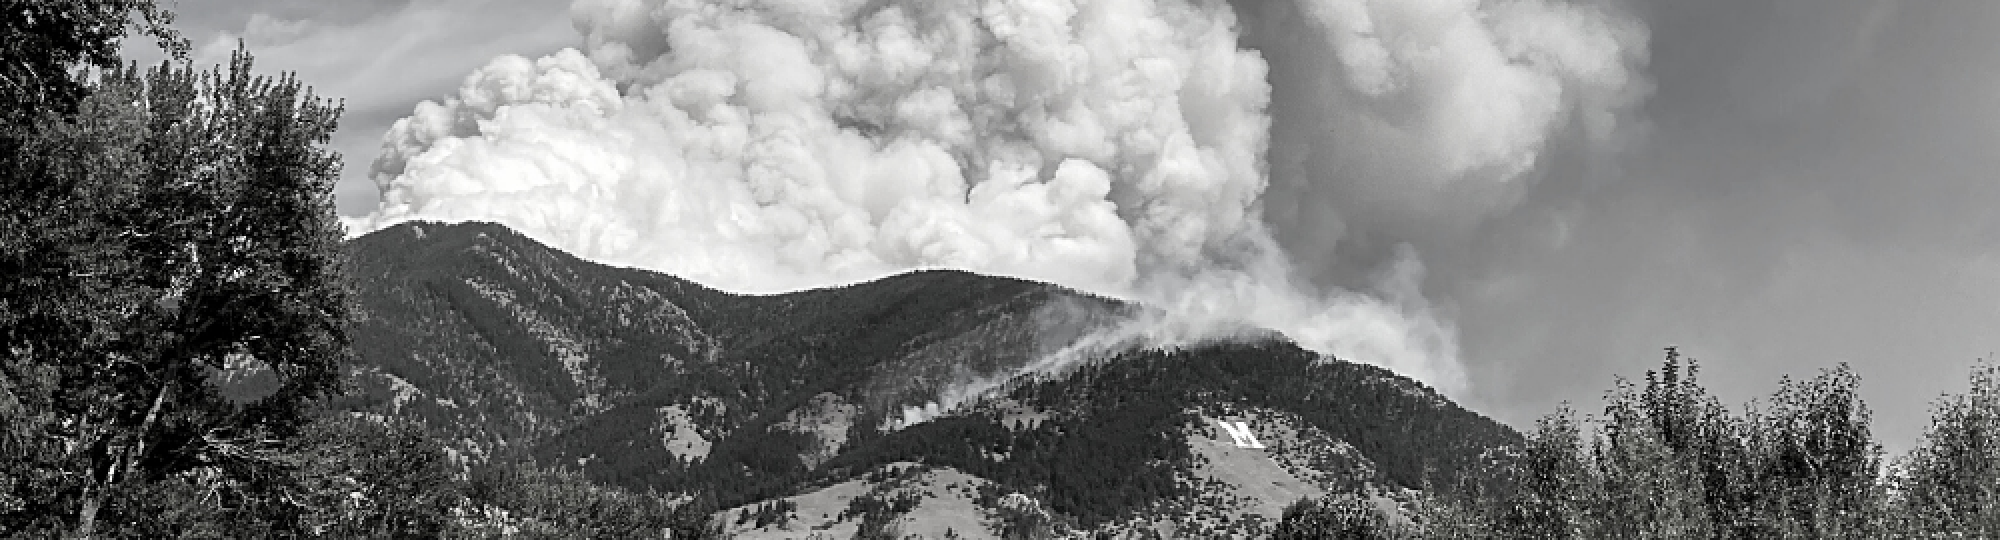 Black and white photo of smoke rising from wildfire in bridger mountains